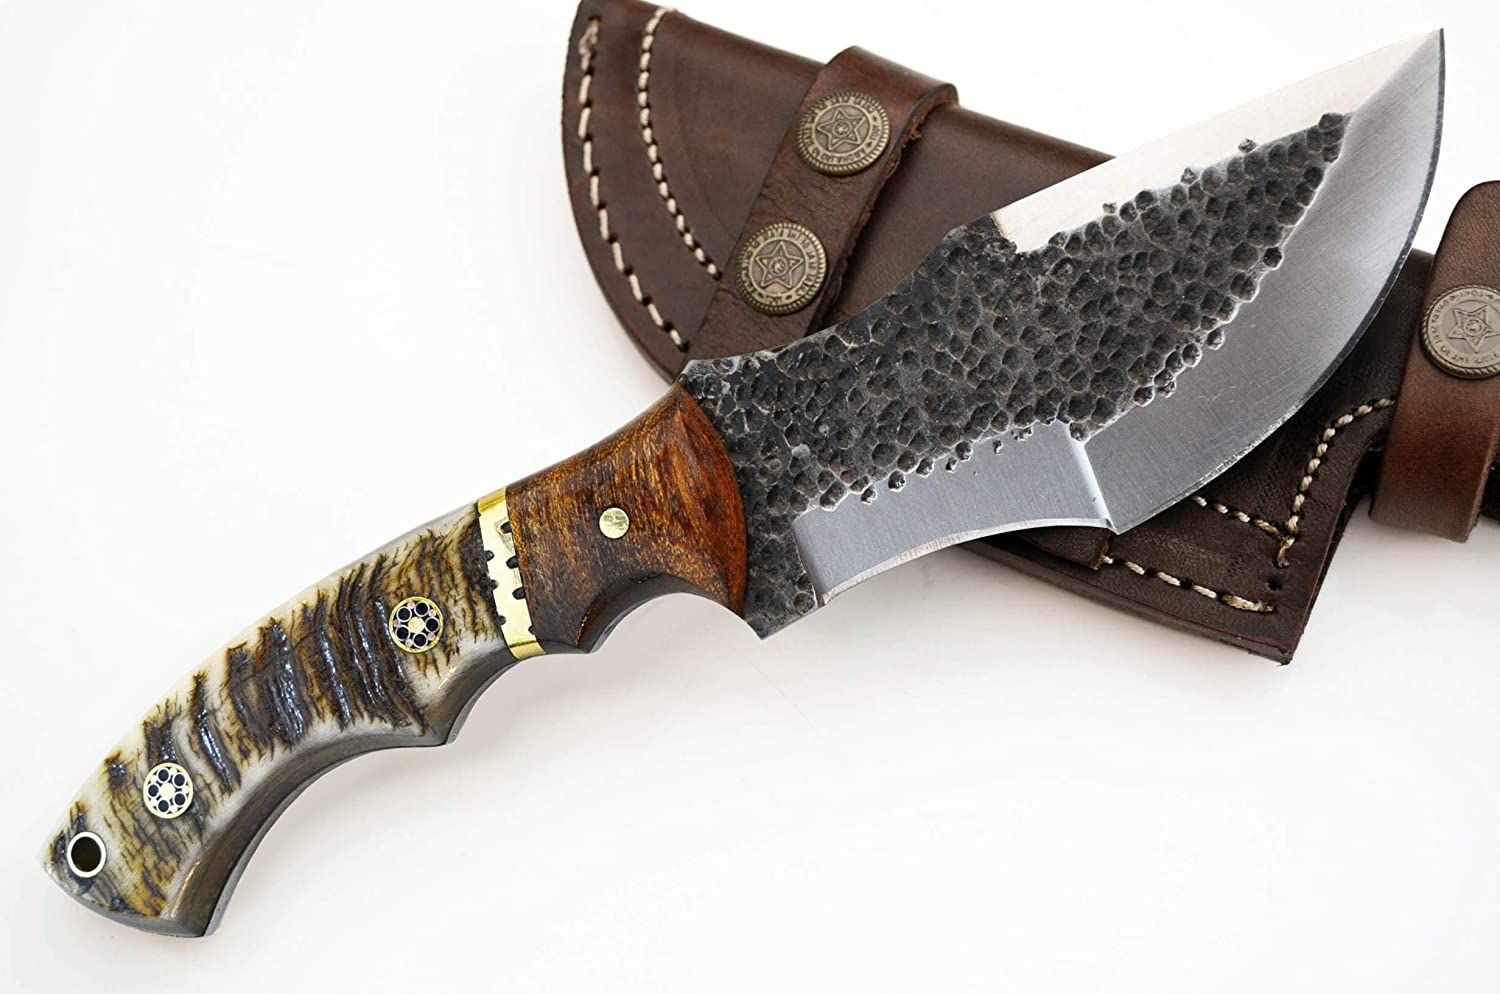 D2 Max 52% OFF Tracker Hunting Knife High material Large Hammered Survival Skinning Knives